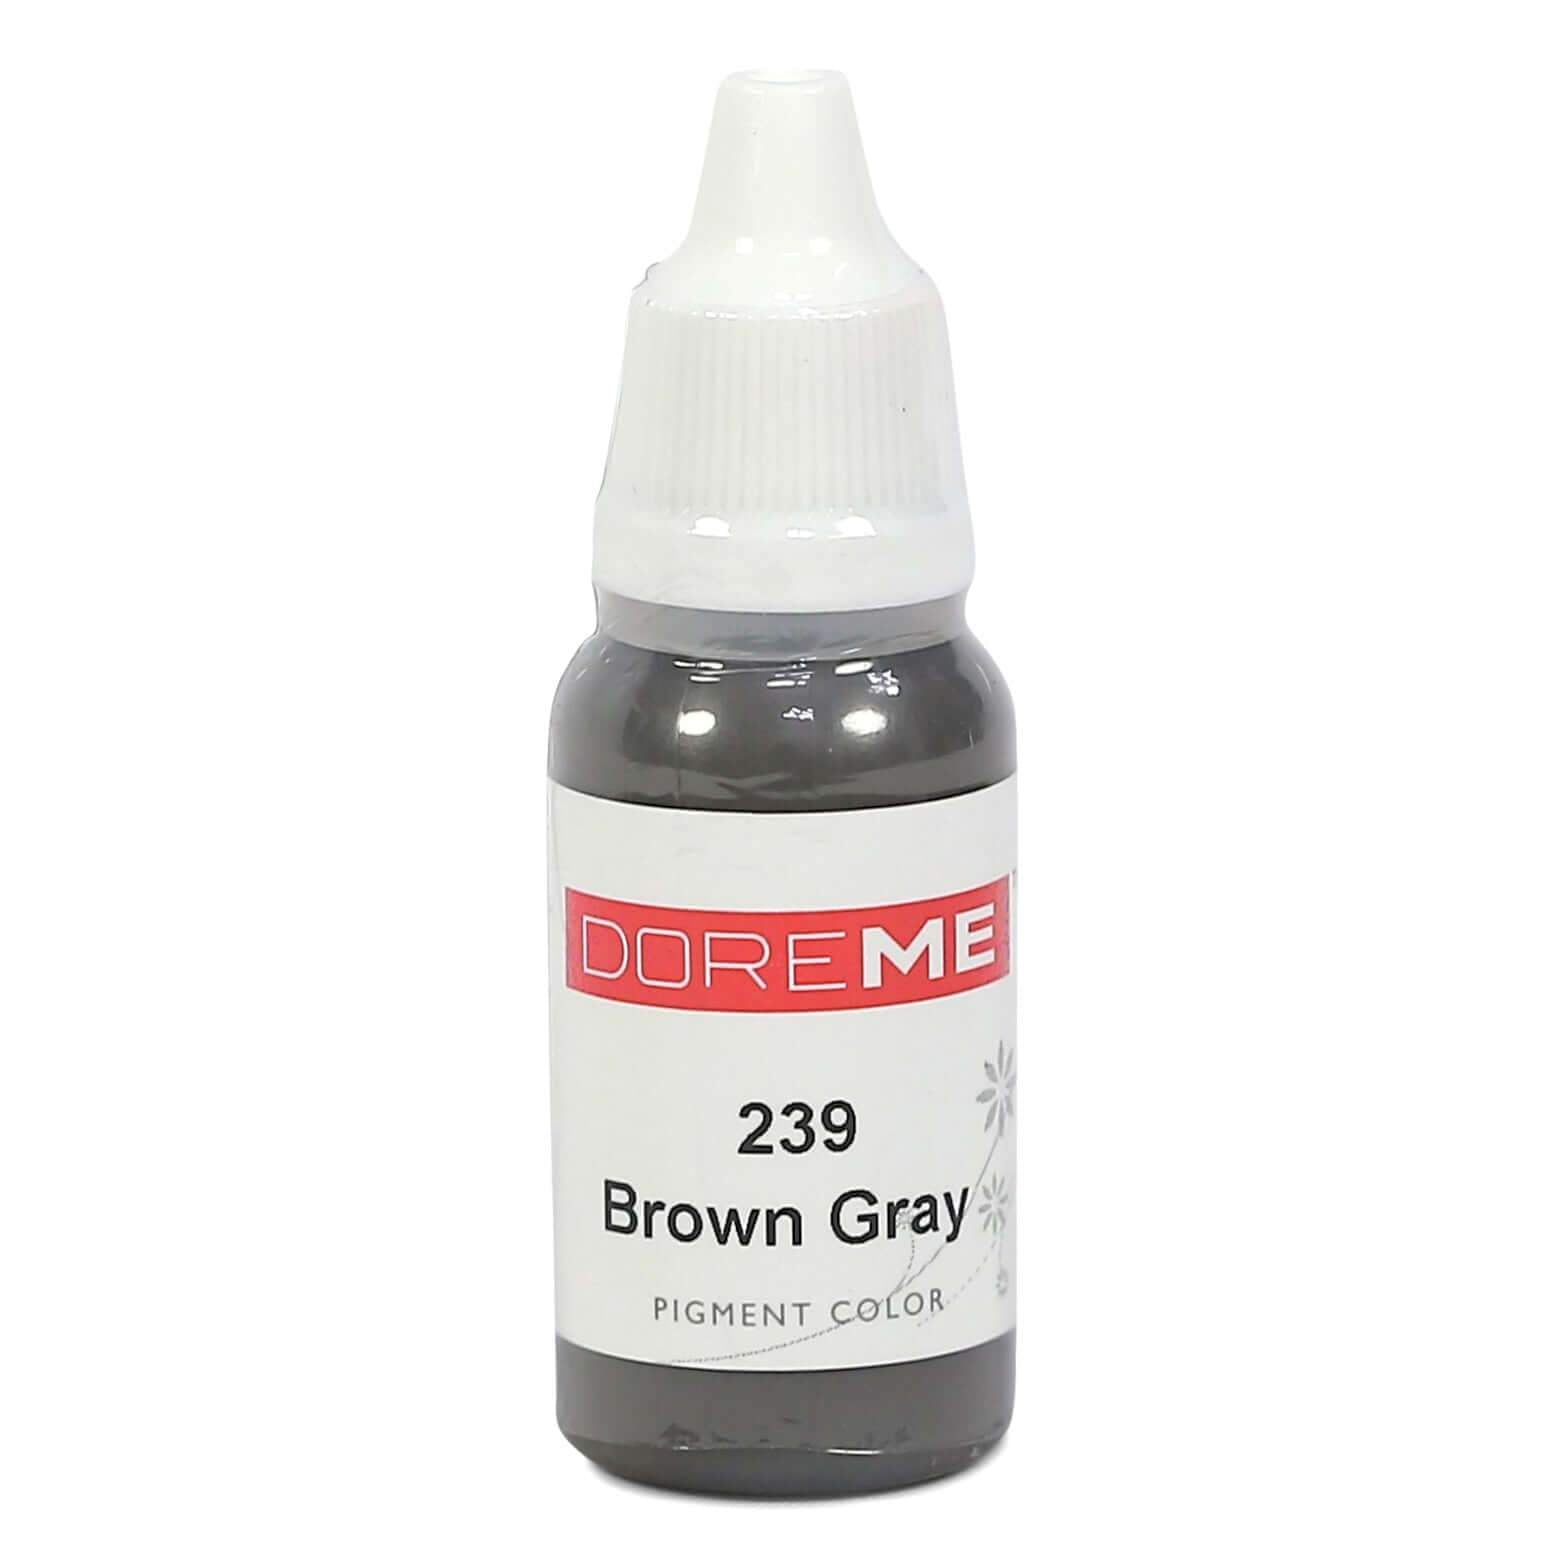 Permanent Makeup pigments Doreme Micropigmentation Eyebrow, Eyeliner, Lip Colours 239 Brown Grey (c) - Beautiful Ink UK trade and wholesale supplier